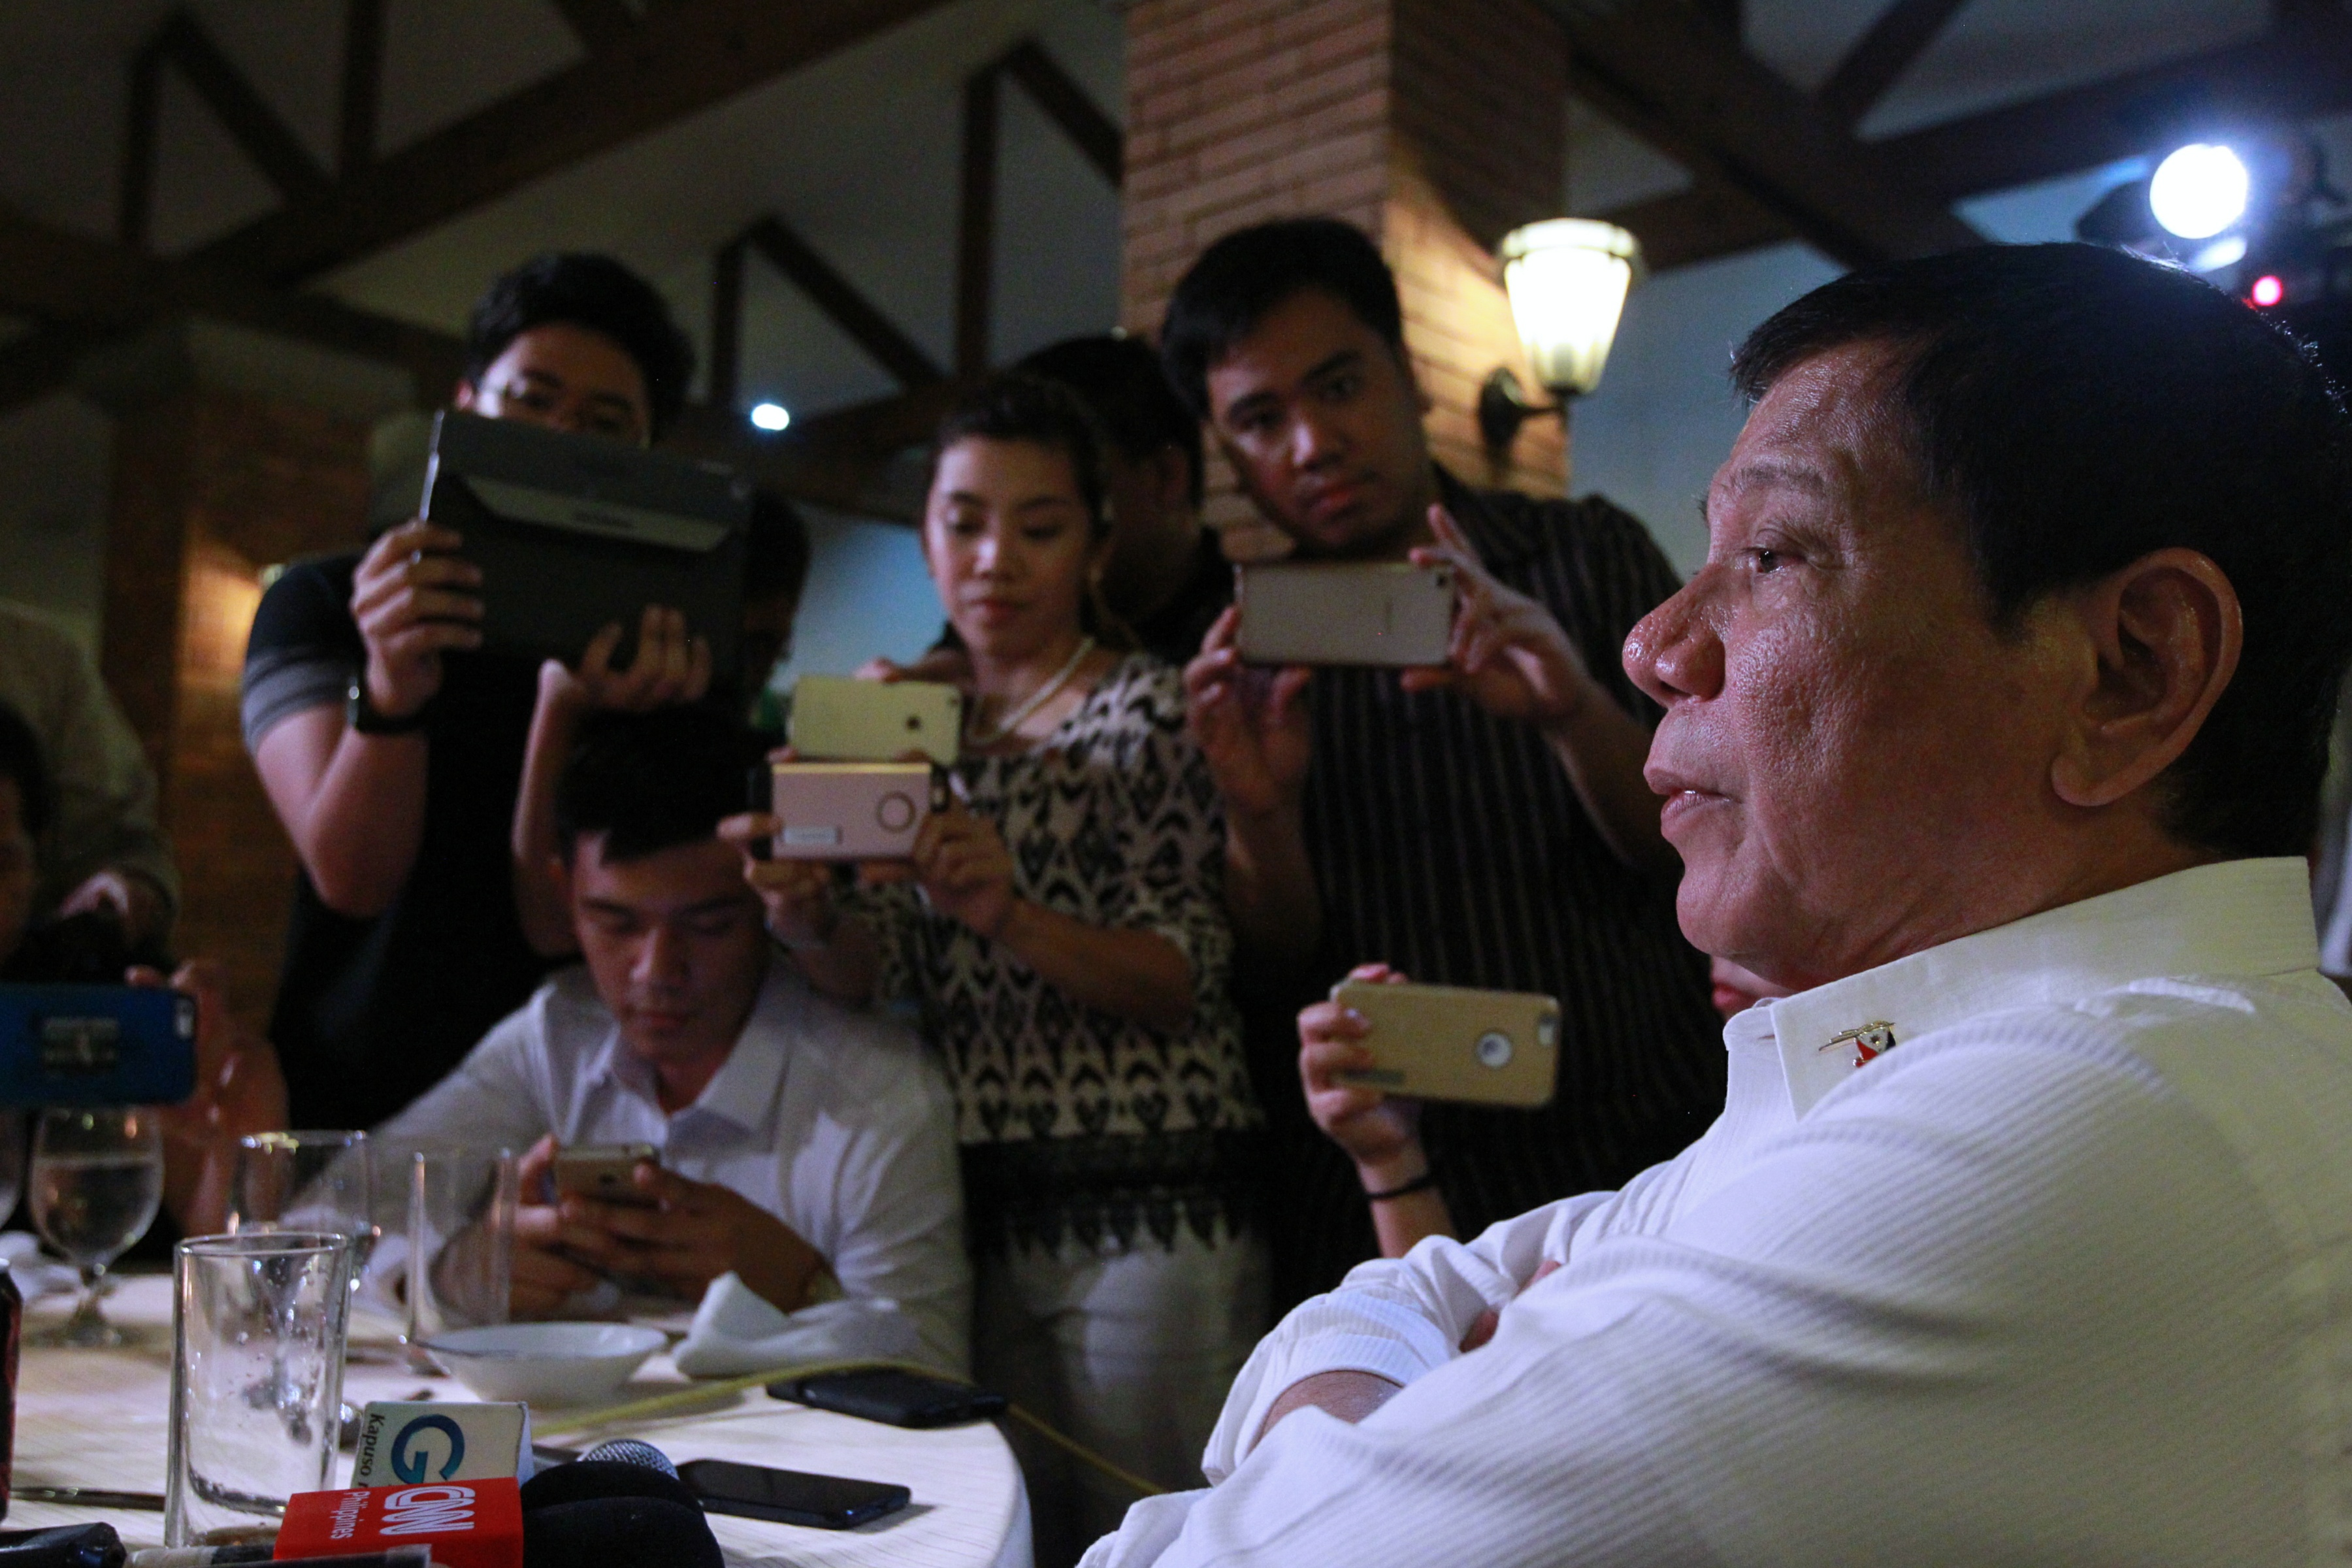 MEDIA NIGHT. President Duterte talks casually to journalists during a dinner he hosts for them on November 15, 2016. Photo by Ace Moradante/Presidential Photo